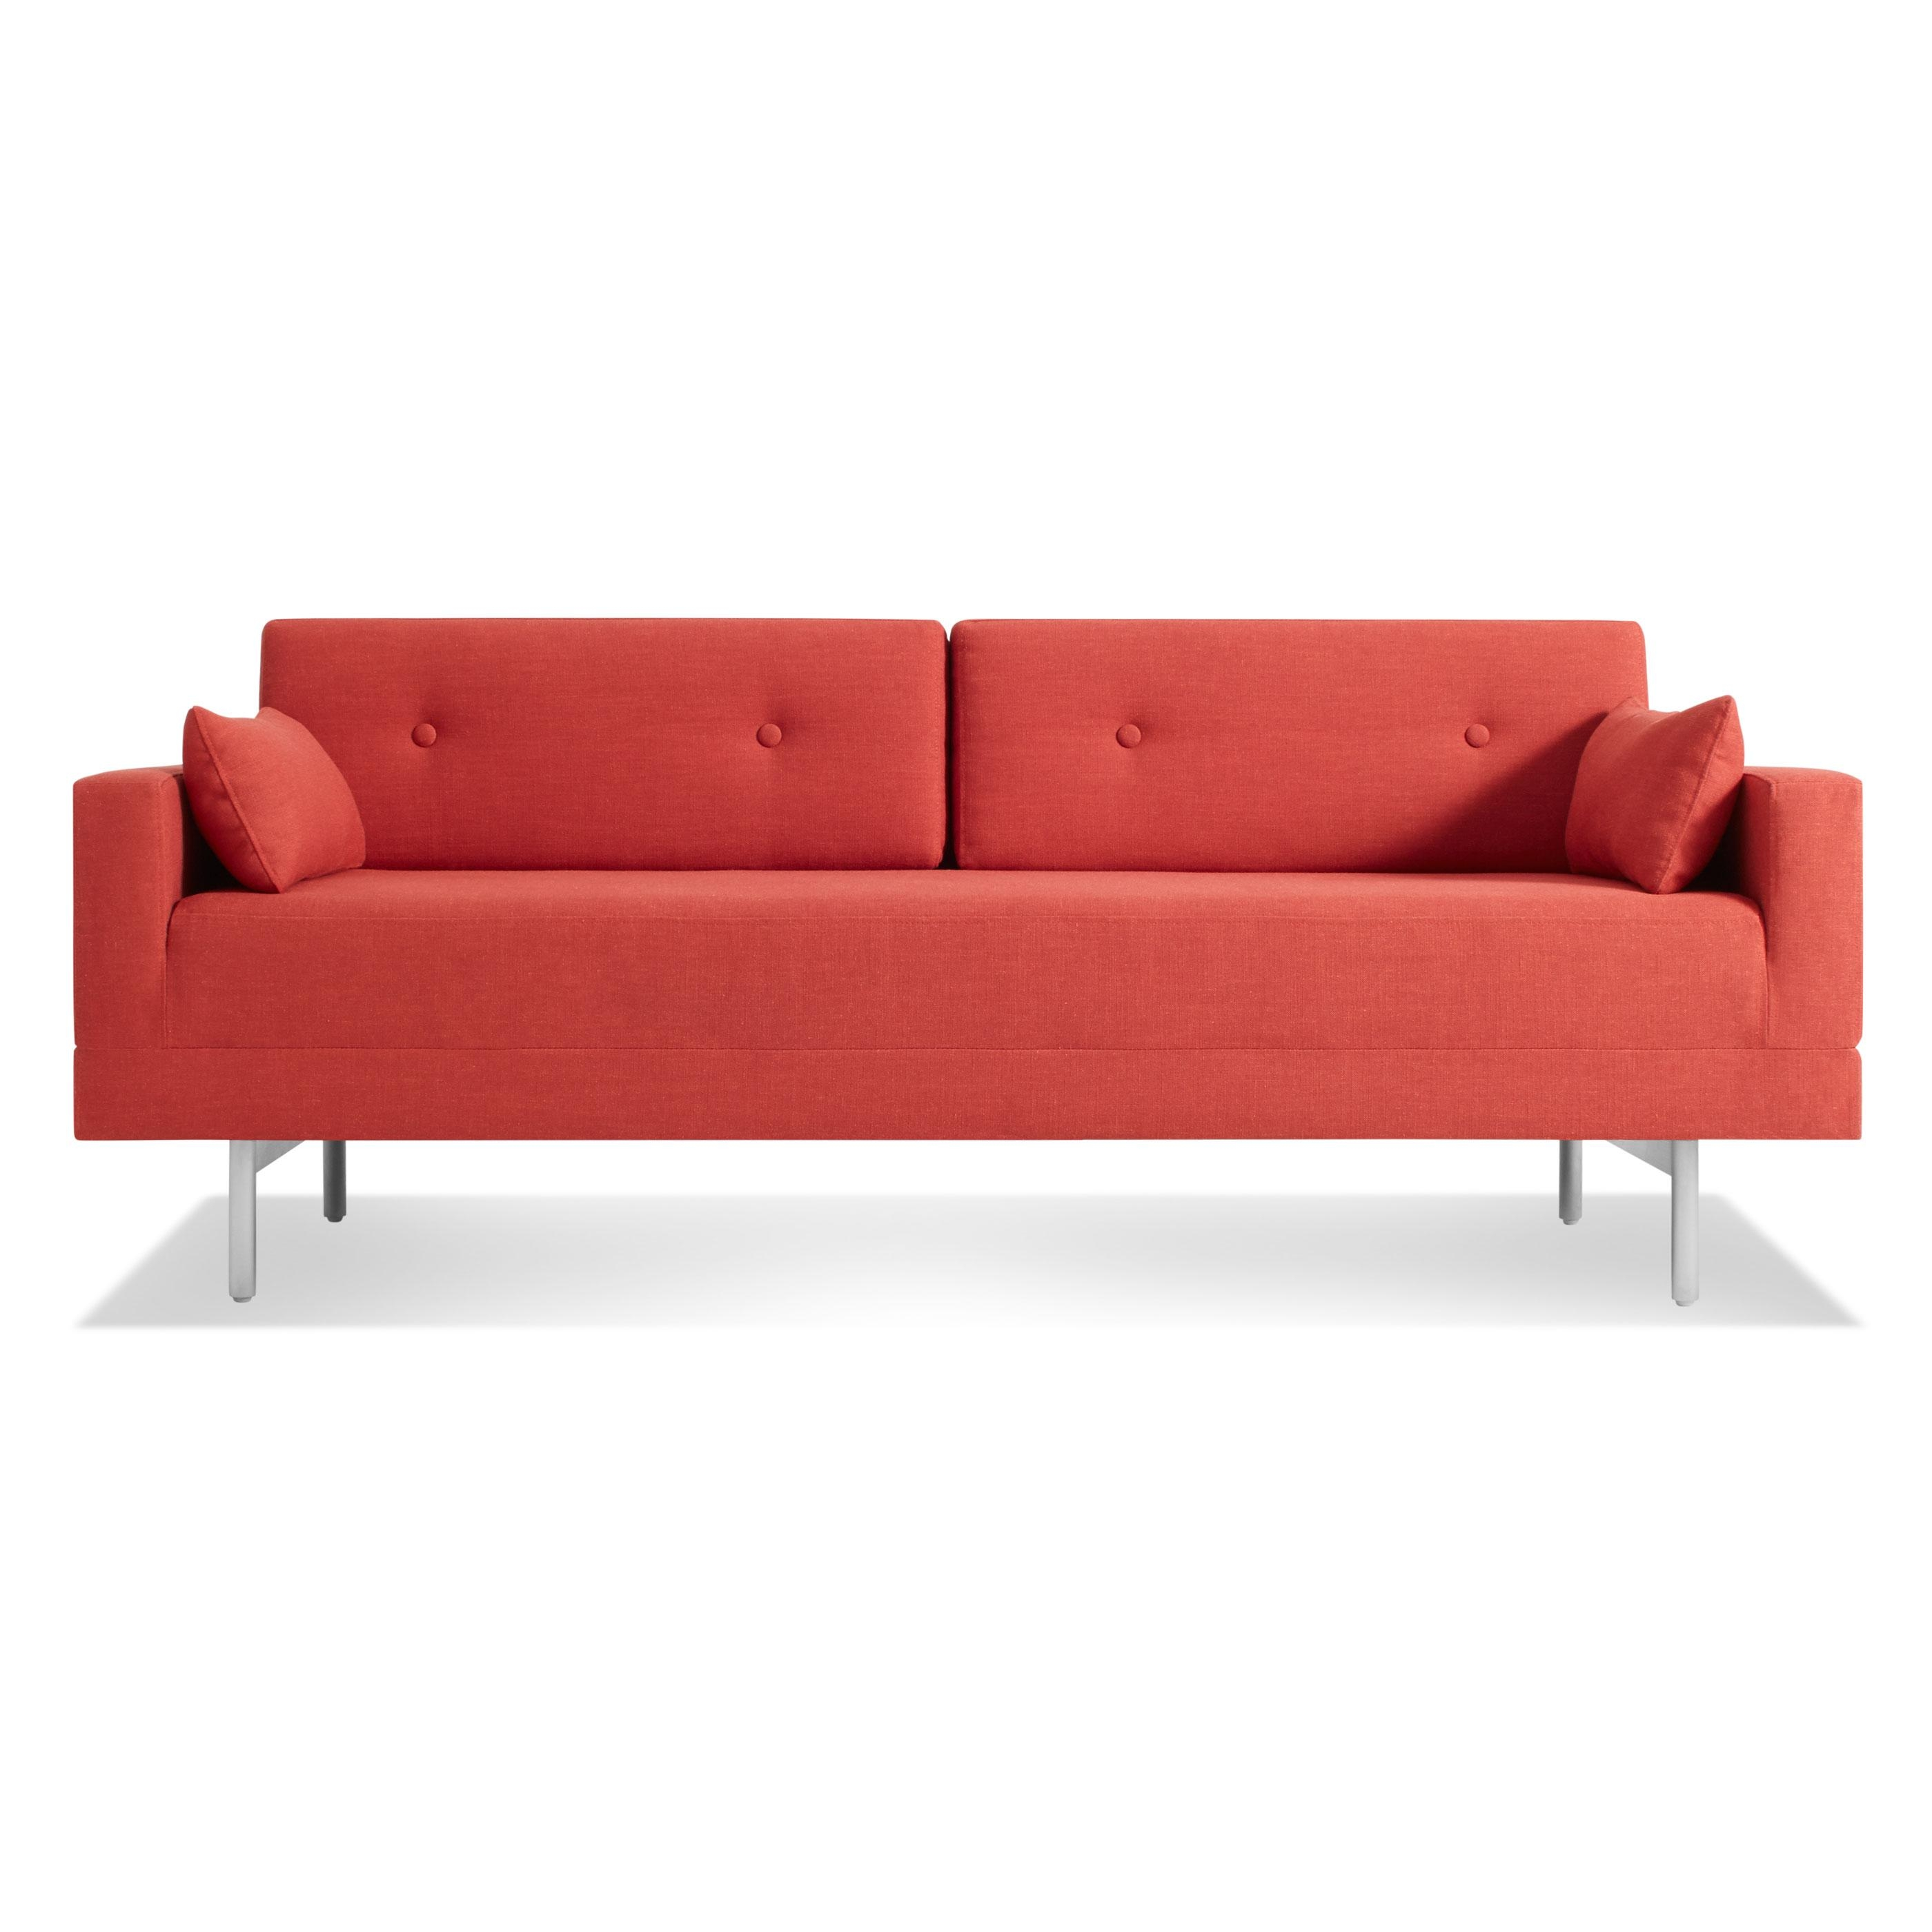 One Night Stand Modern Queen Sleeper Sofa | Blu Dot Intended For Blu Dot Sofas (Image 18 of 20)